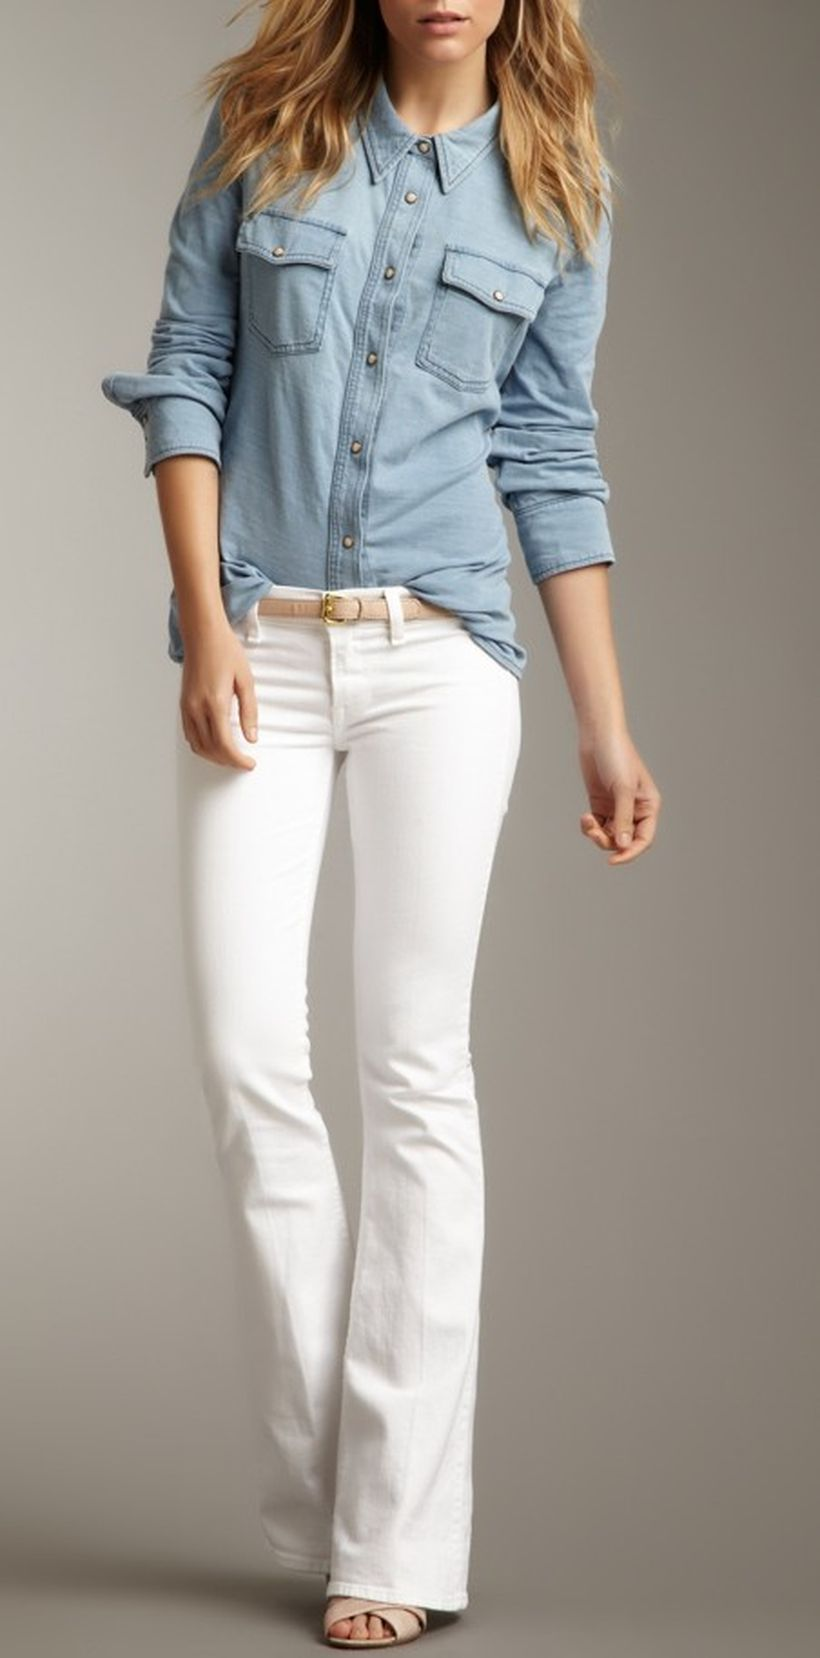 Perfect ways to wear white denim jeans outfits 36